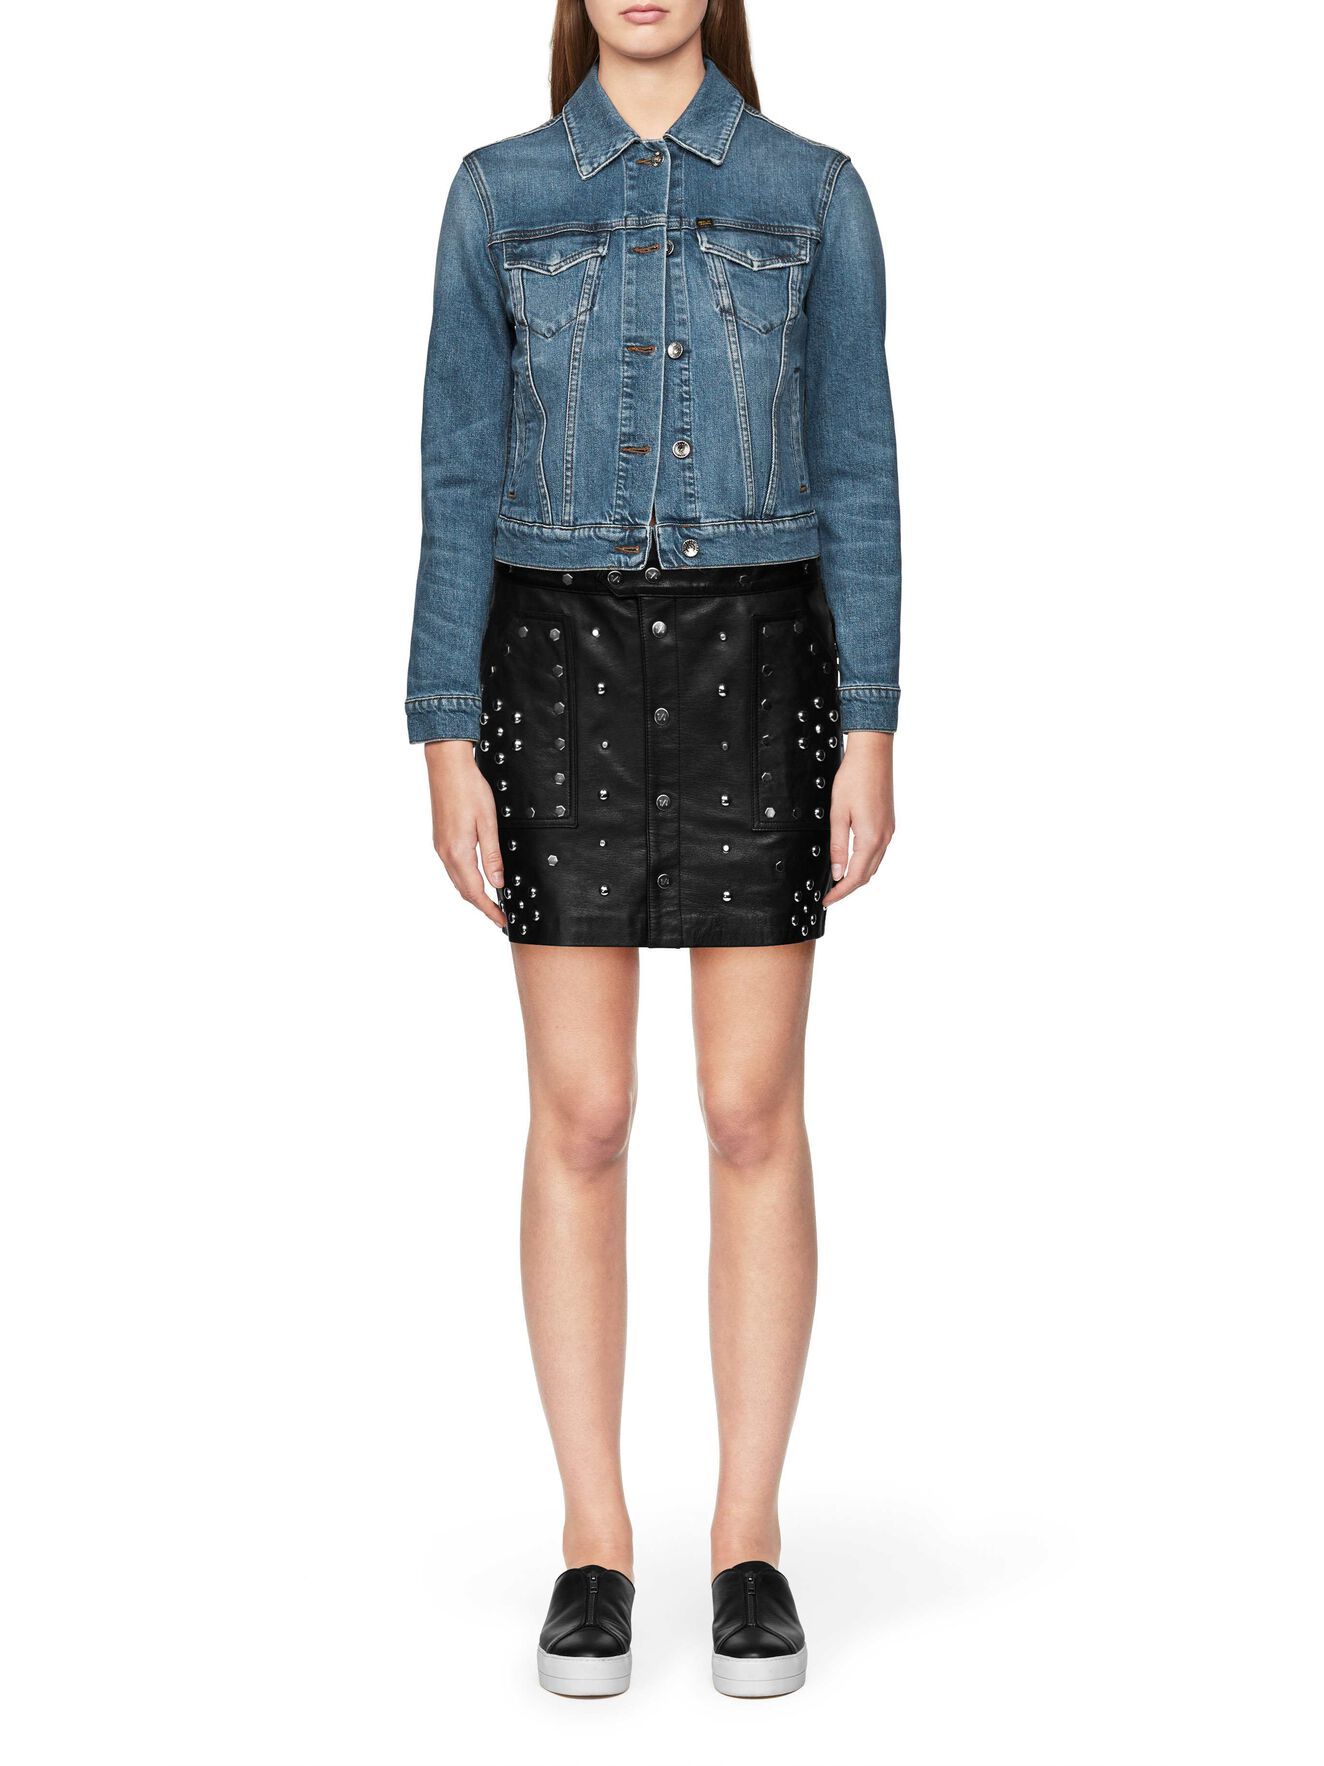 Bleed Skirt in Black from Tiger of Sweden